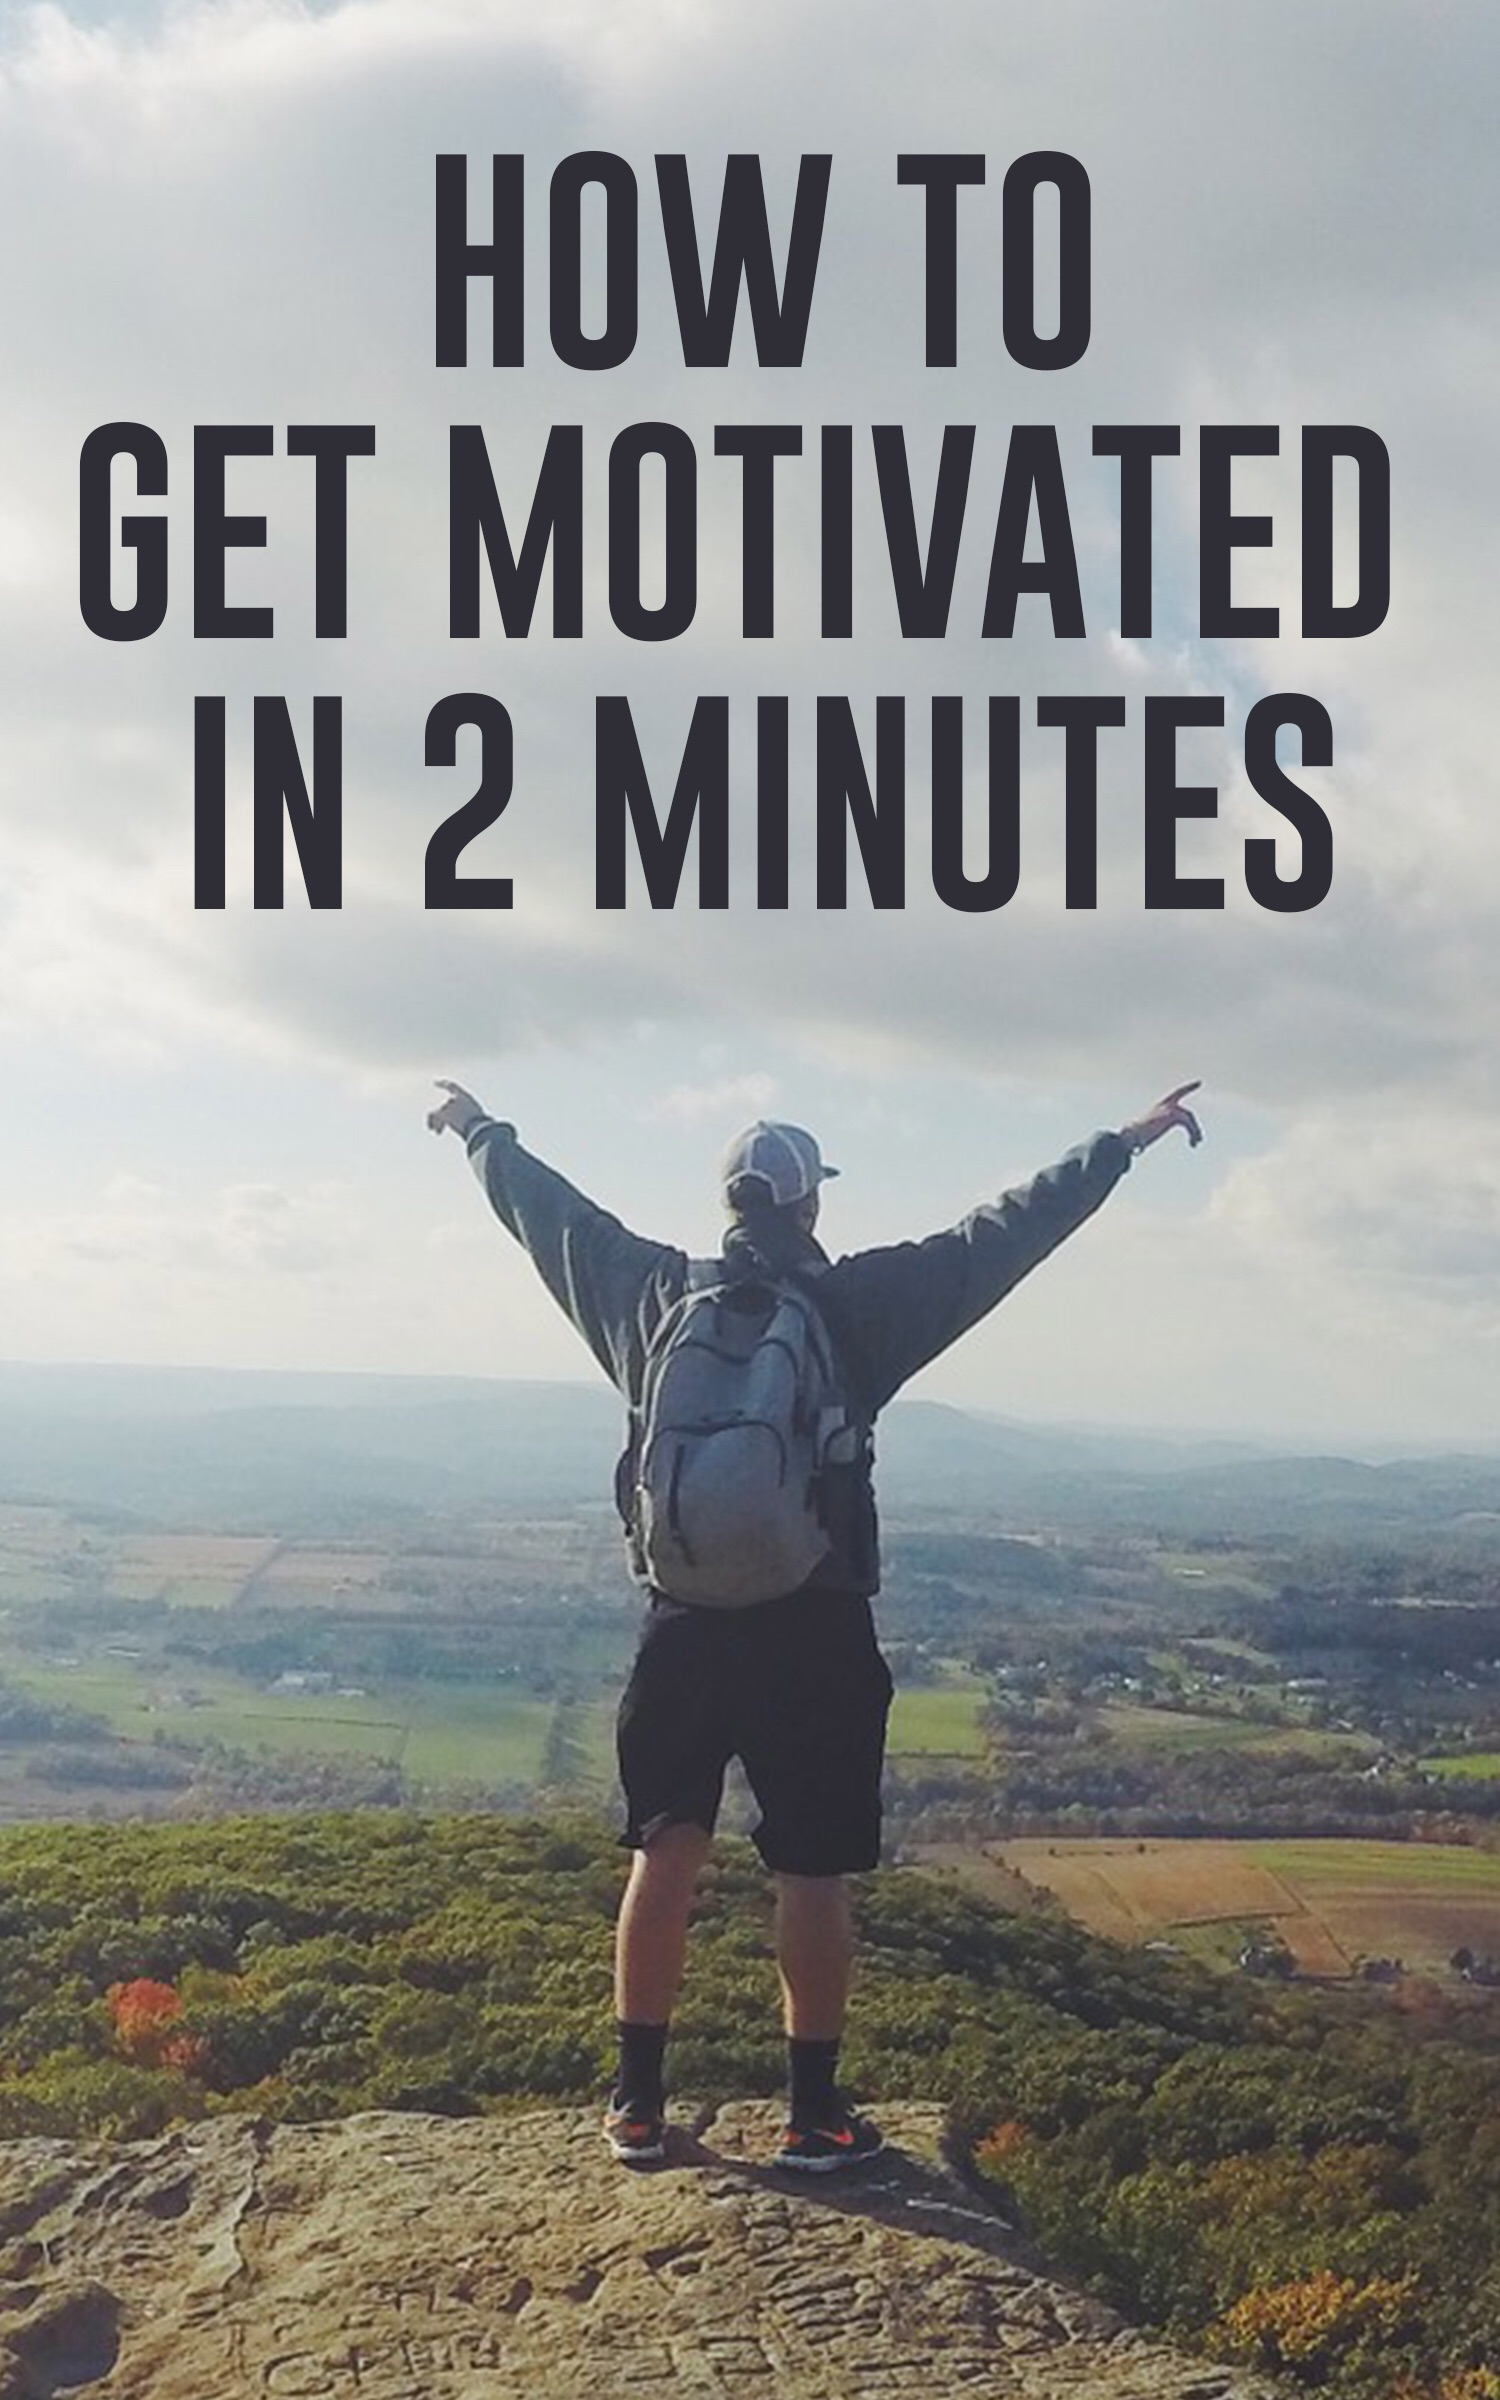 HOW TO GET MOTIVATED IN TWO MINUTES